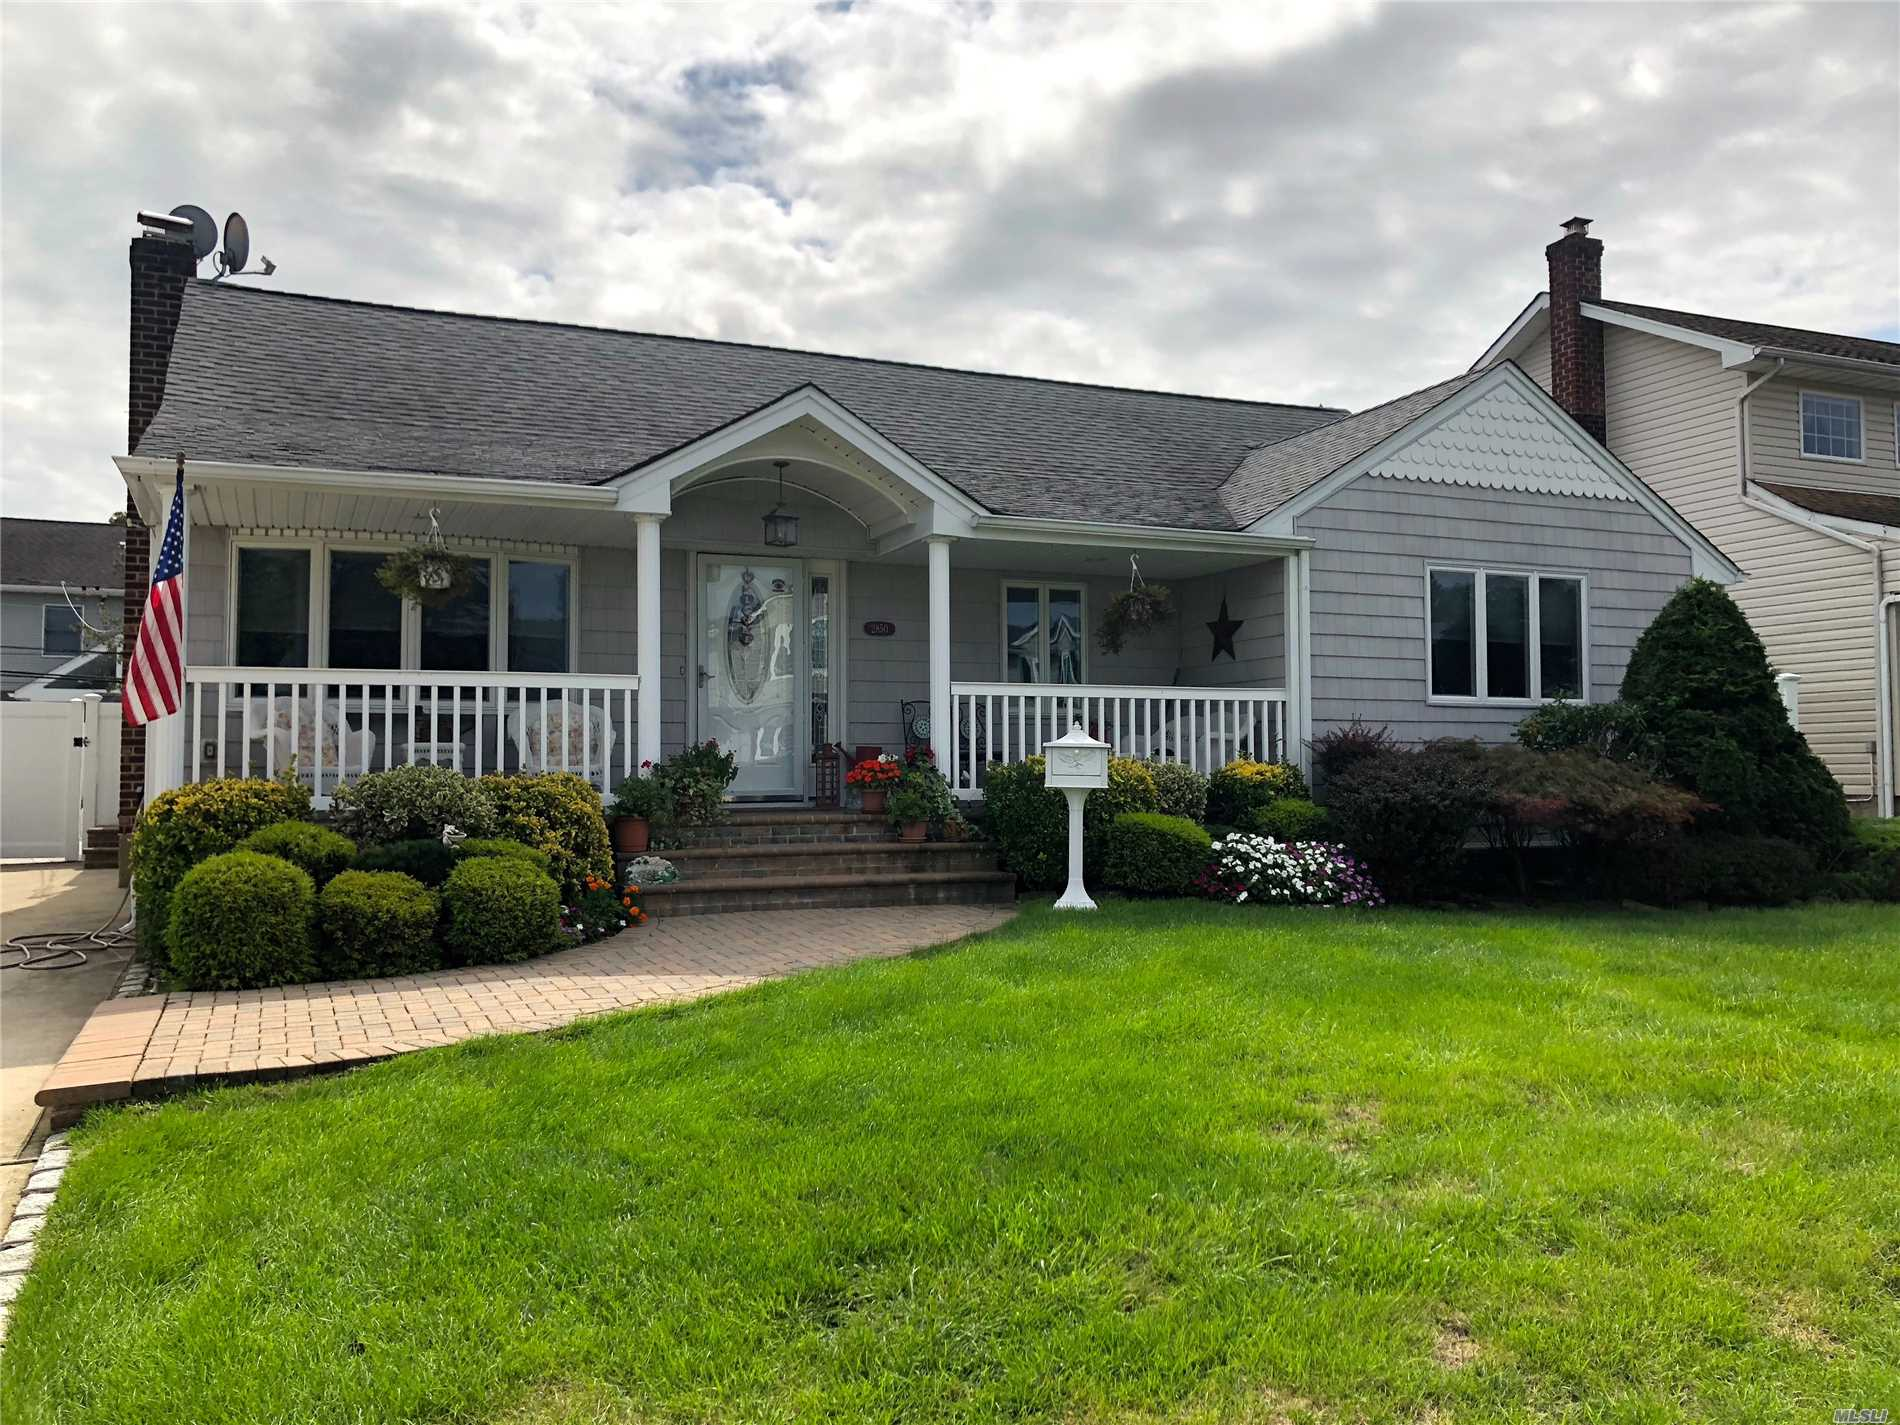 Remarkable 3 Bedrm, 2 Full Bath Ranch In The Desirable Forrest City Section Of Wantagh. New Eat In Kitchen W/Granite & S/S Appliances, Formal Dining Rm, Family Rm Extension W/Sliders To Brick Patio & Heated In-Ground Pool. Newer Roof, Windows, Siding, Updated Baths. Full Finished Basement W/ Den, Office, Laundry, Storage W/Cedar Closet. Hardwd Flrs Thru Out, Oil/Ha Heating (Gas In Home), Cac. Dont Miss This Beauty!